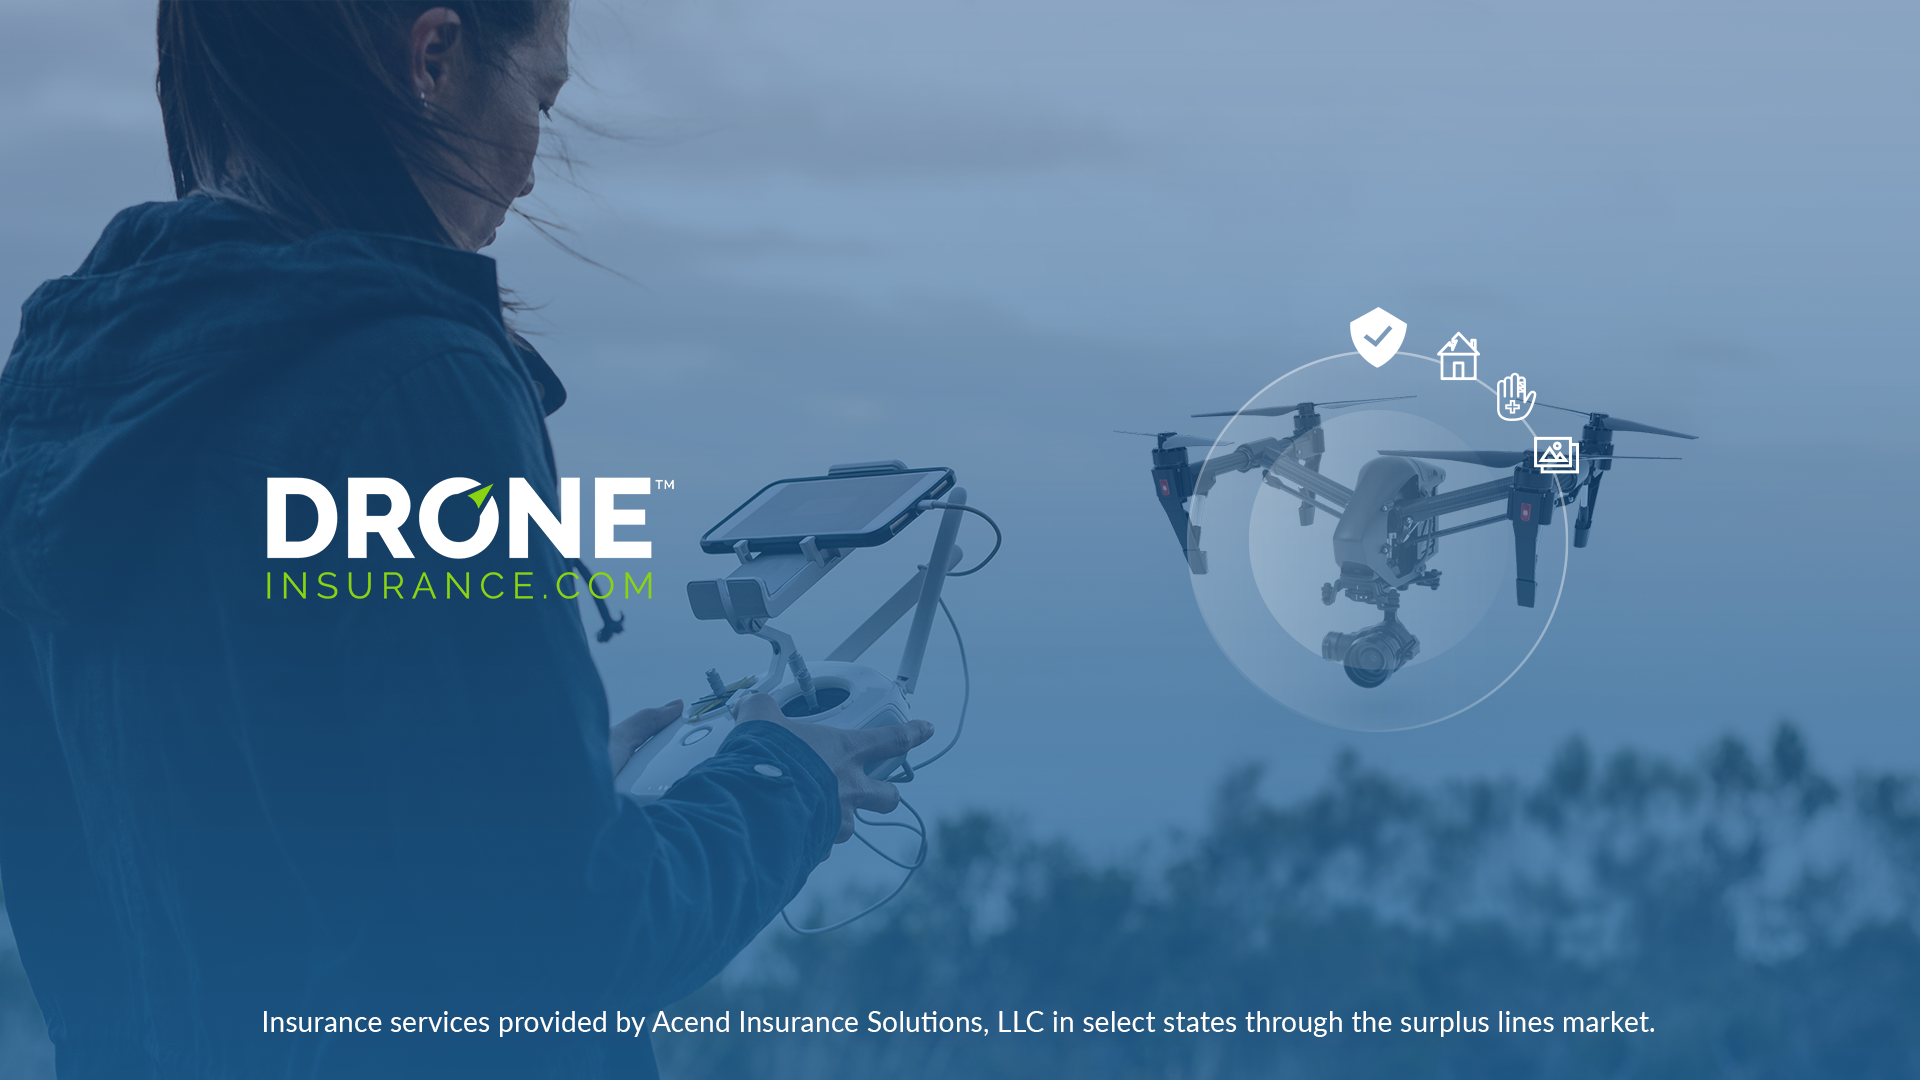 Finally, a transparent drone insurance policy is here (with daily rates!)